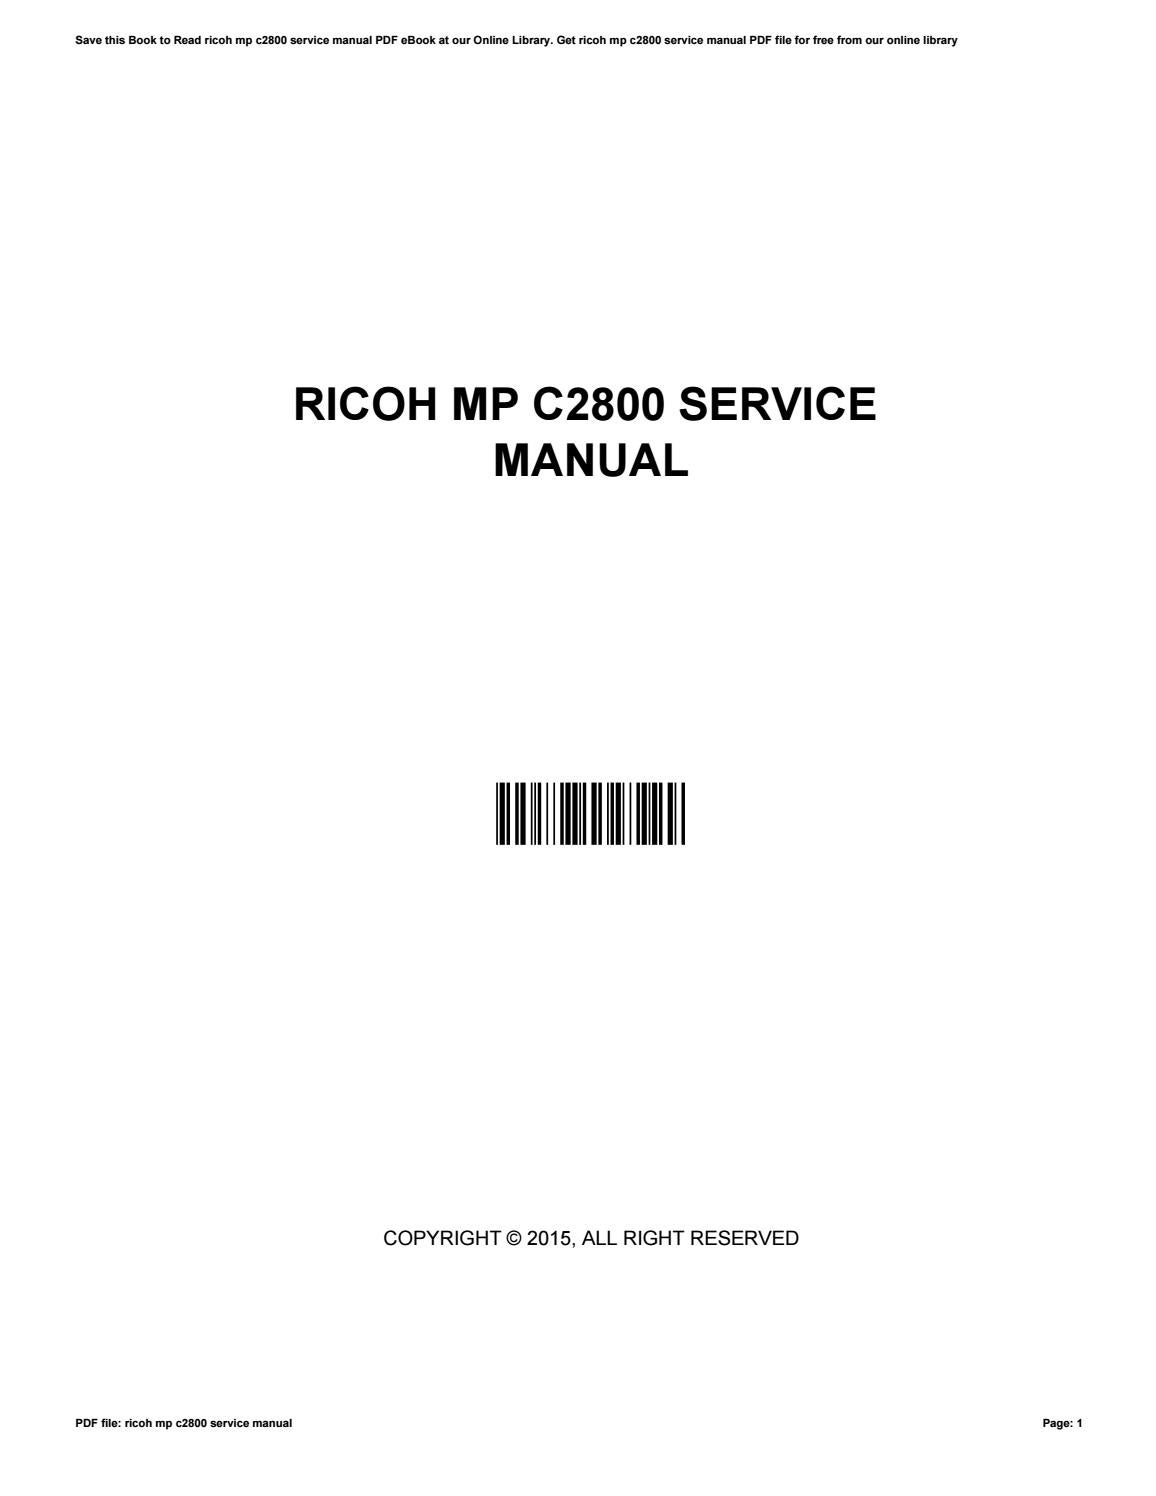 ricoh aficio sp1000 service repair manual ebook